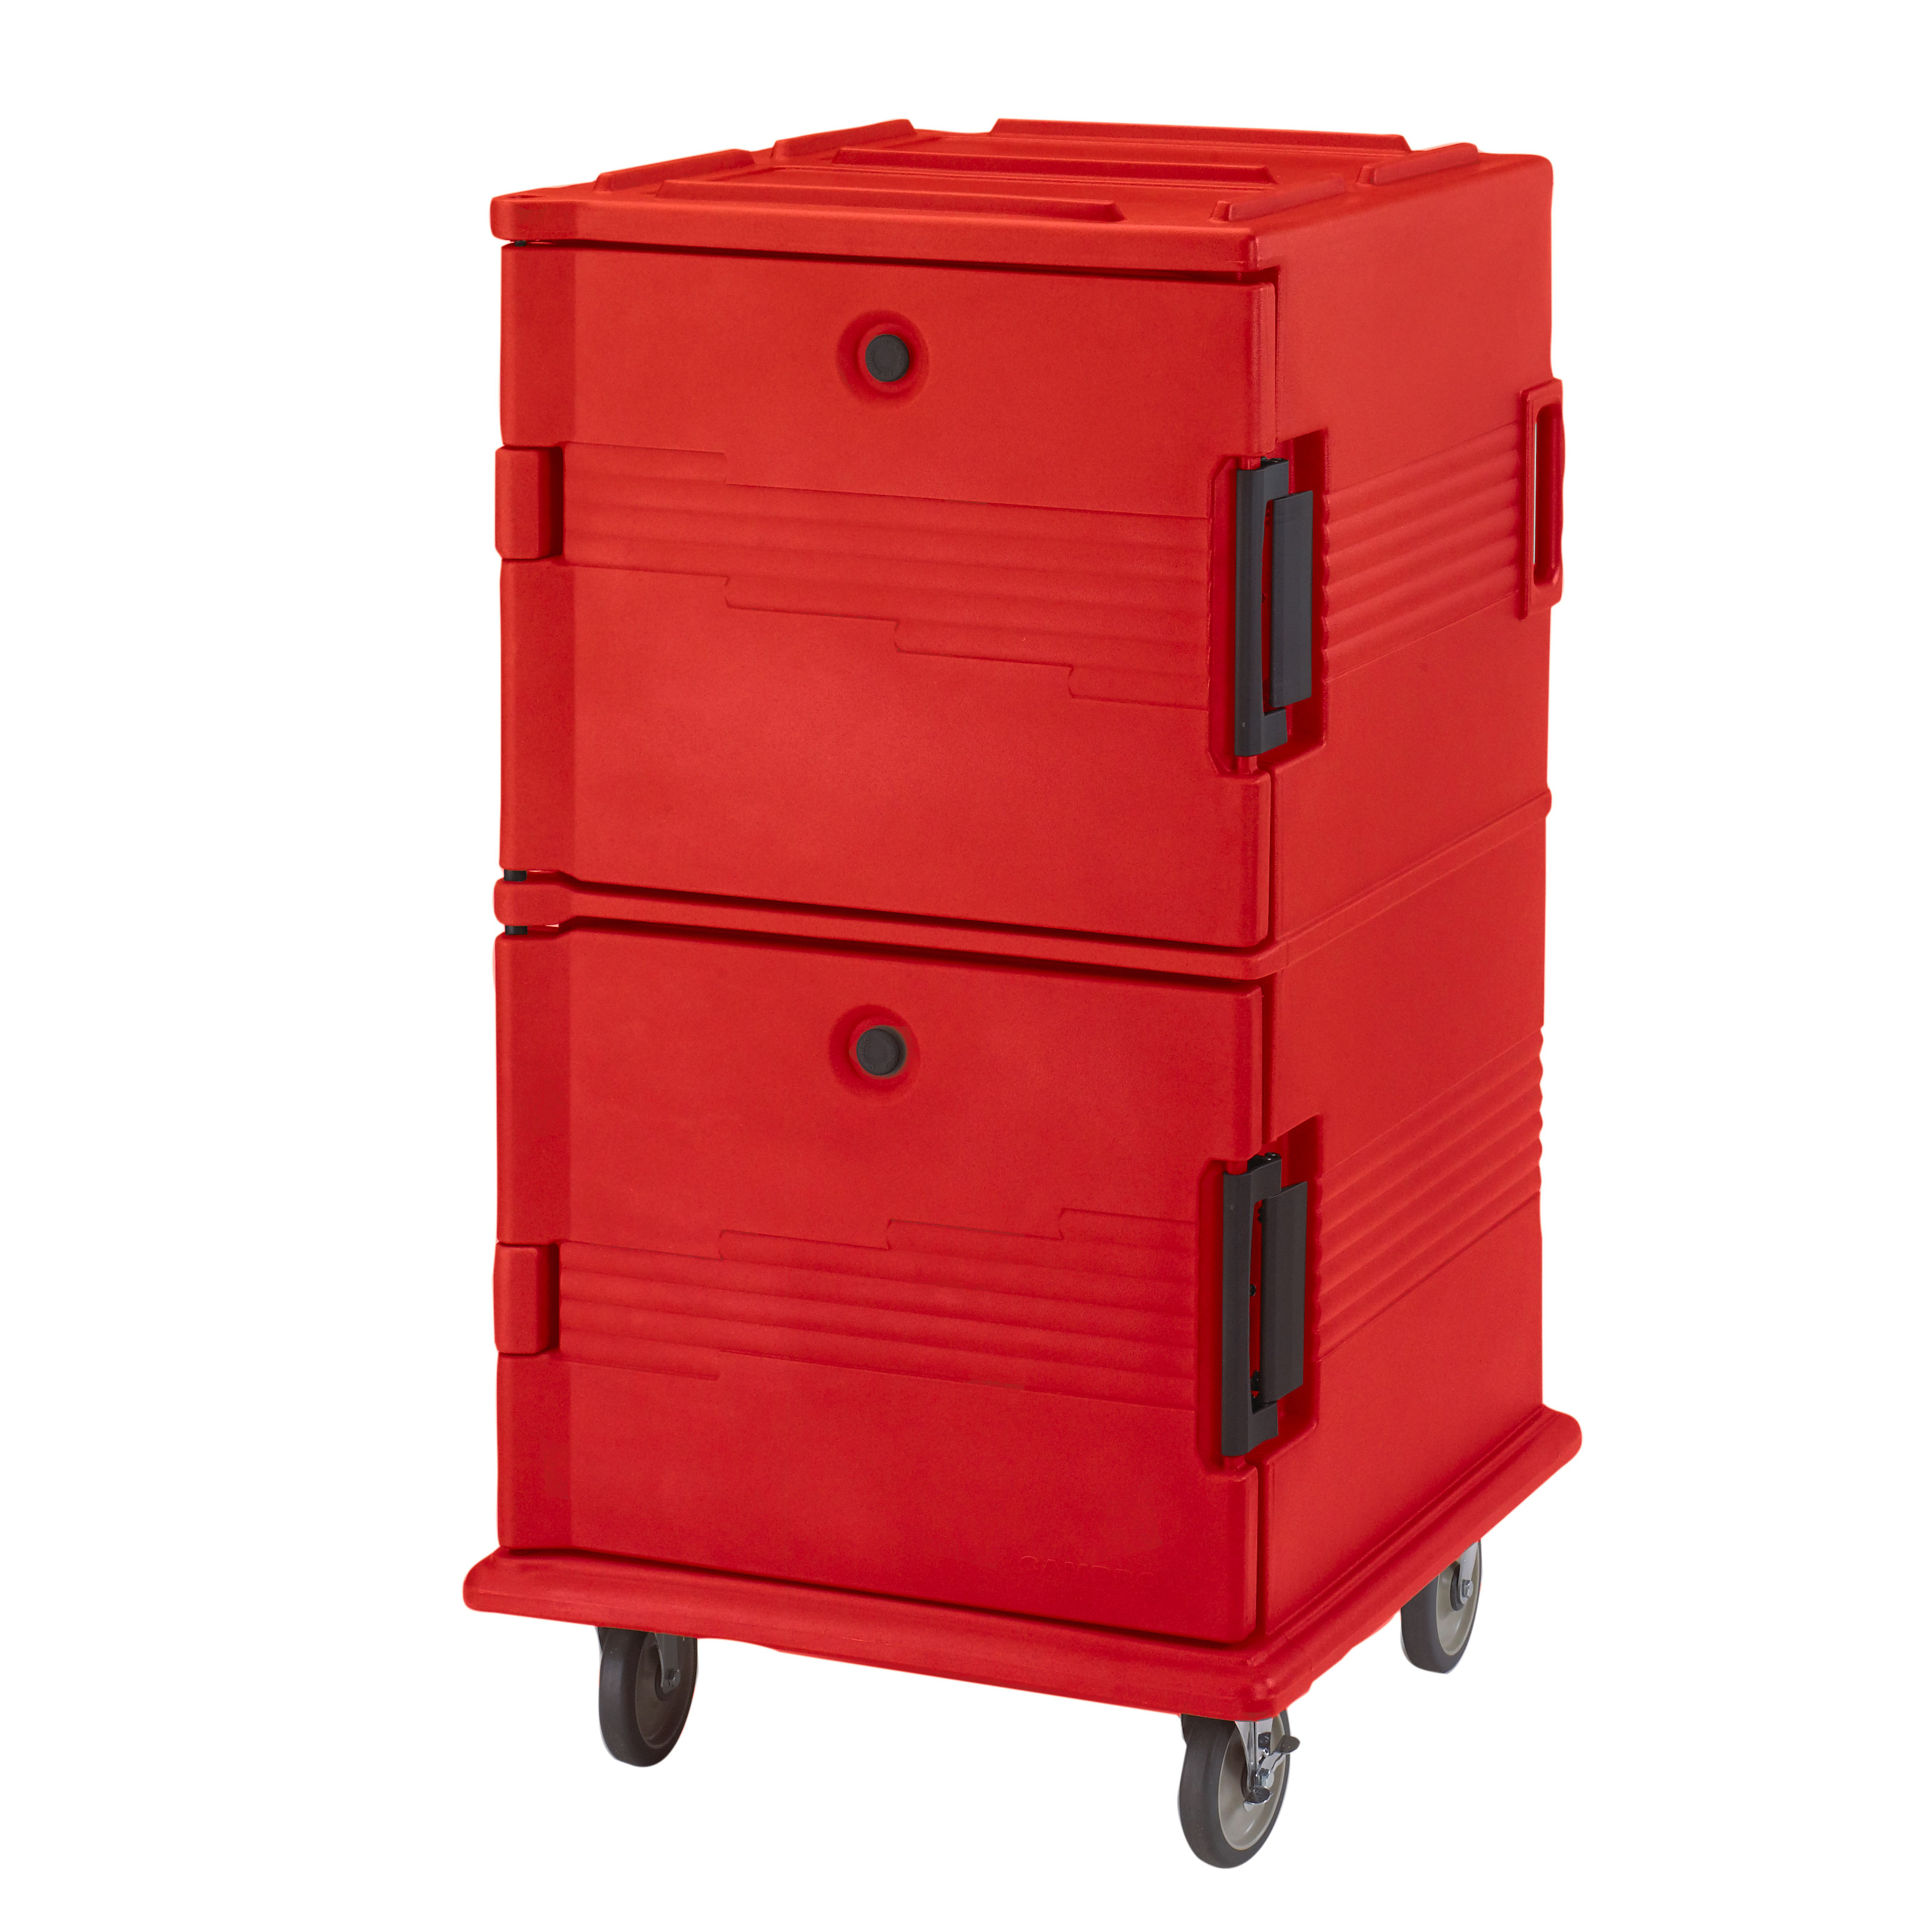 Cambro UPC1600SP158 proofing/holding cabinets